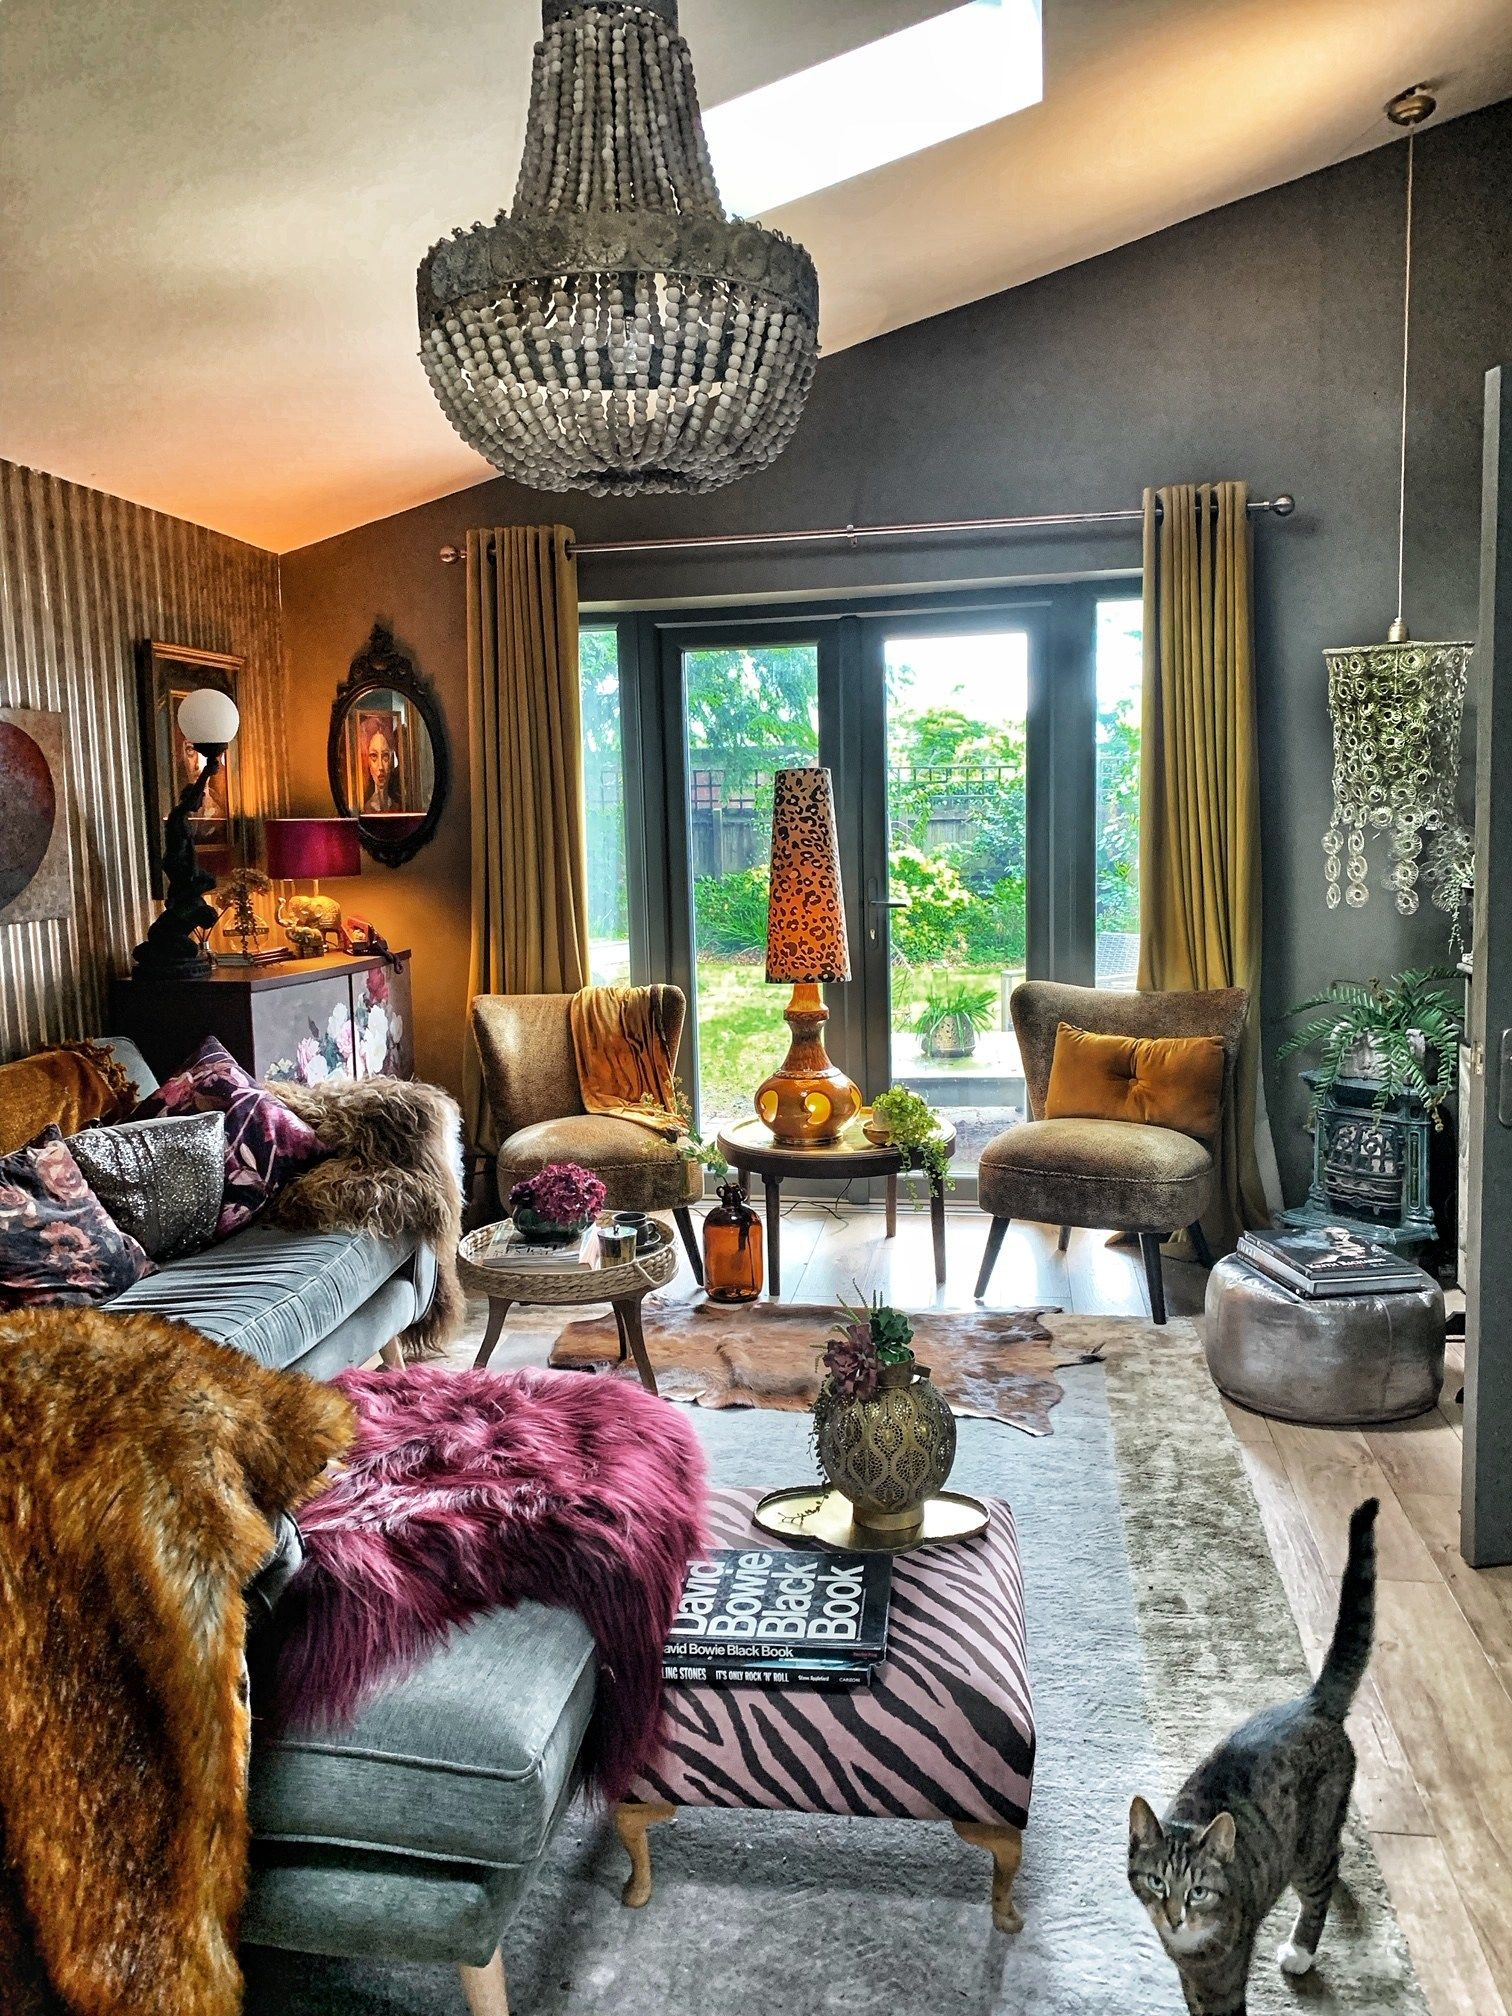 The Unique & Glamorous Maximalist Home of Sarah Parmenter Upcyclist Extraordinaire​ | Here, Sarah has combined her love of animal print with softer florals. Whilst you might not think this combination would work, they do by the clever use of colour. #livingroom #eclecticdecor #maximalistinteriors #maximalistdecor #interiorinspo #interiordesign #interiordecor #homedecor #housetour #interiors #homedesign